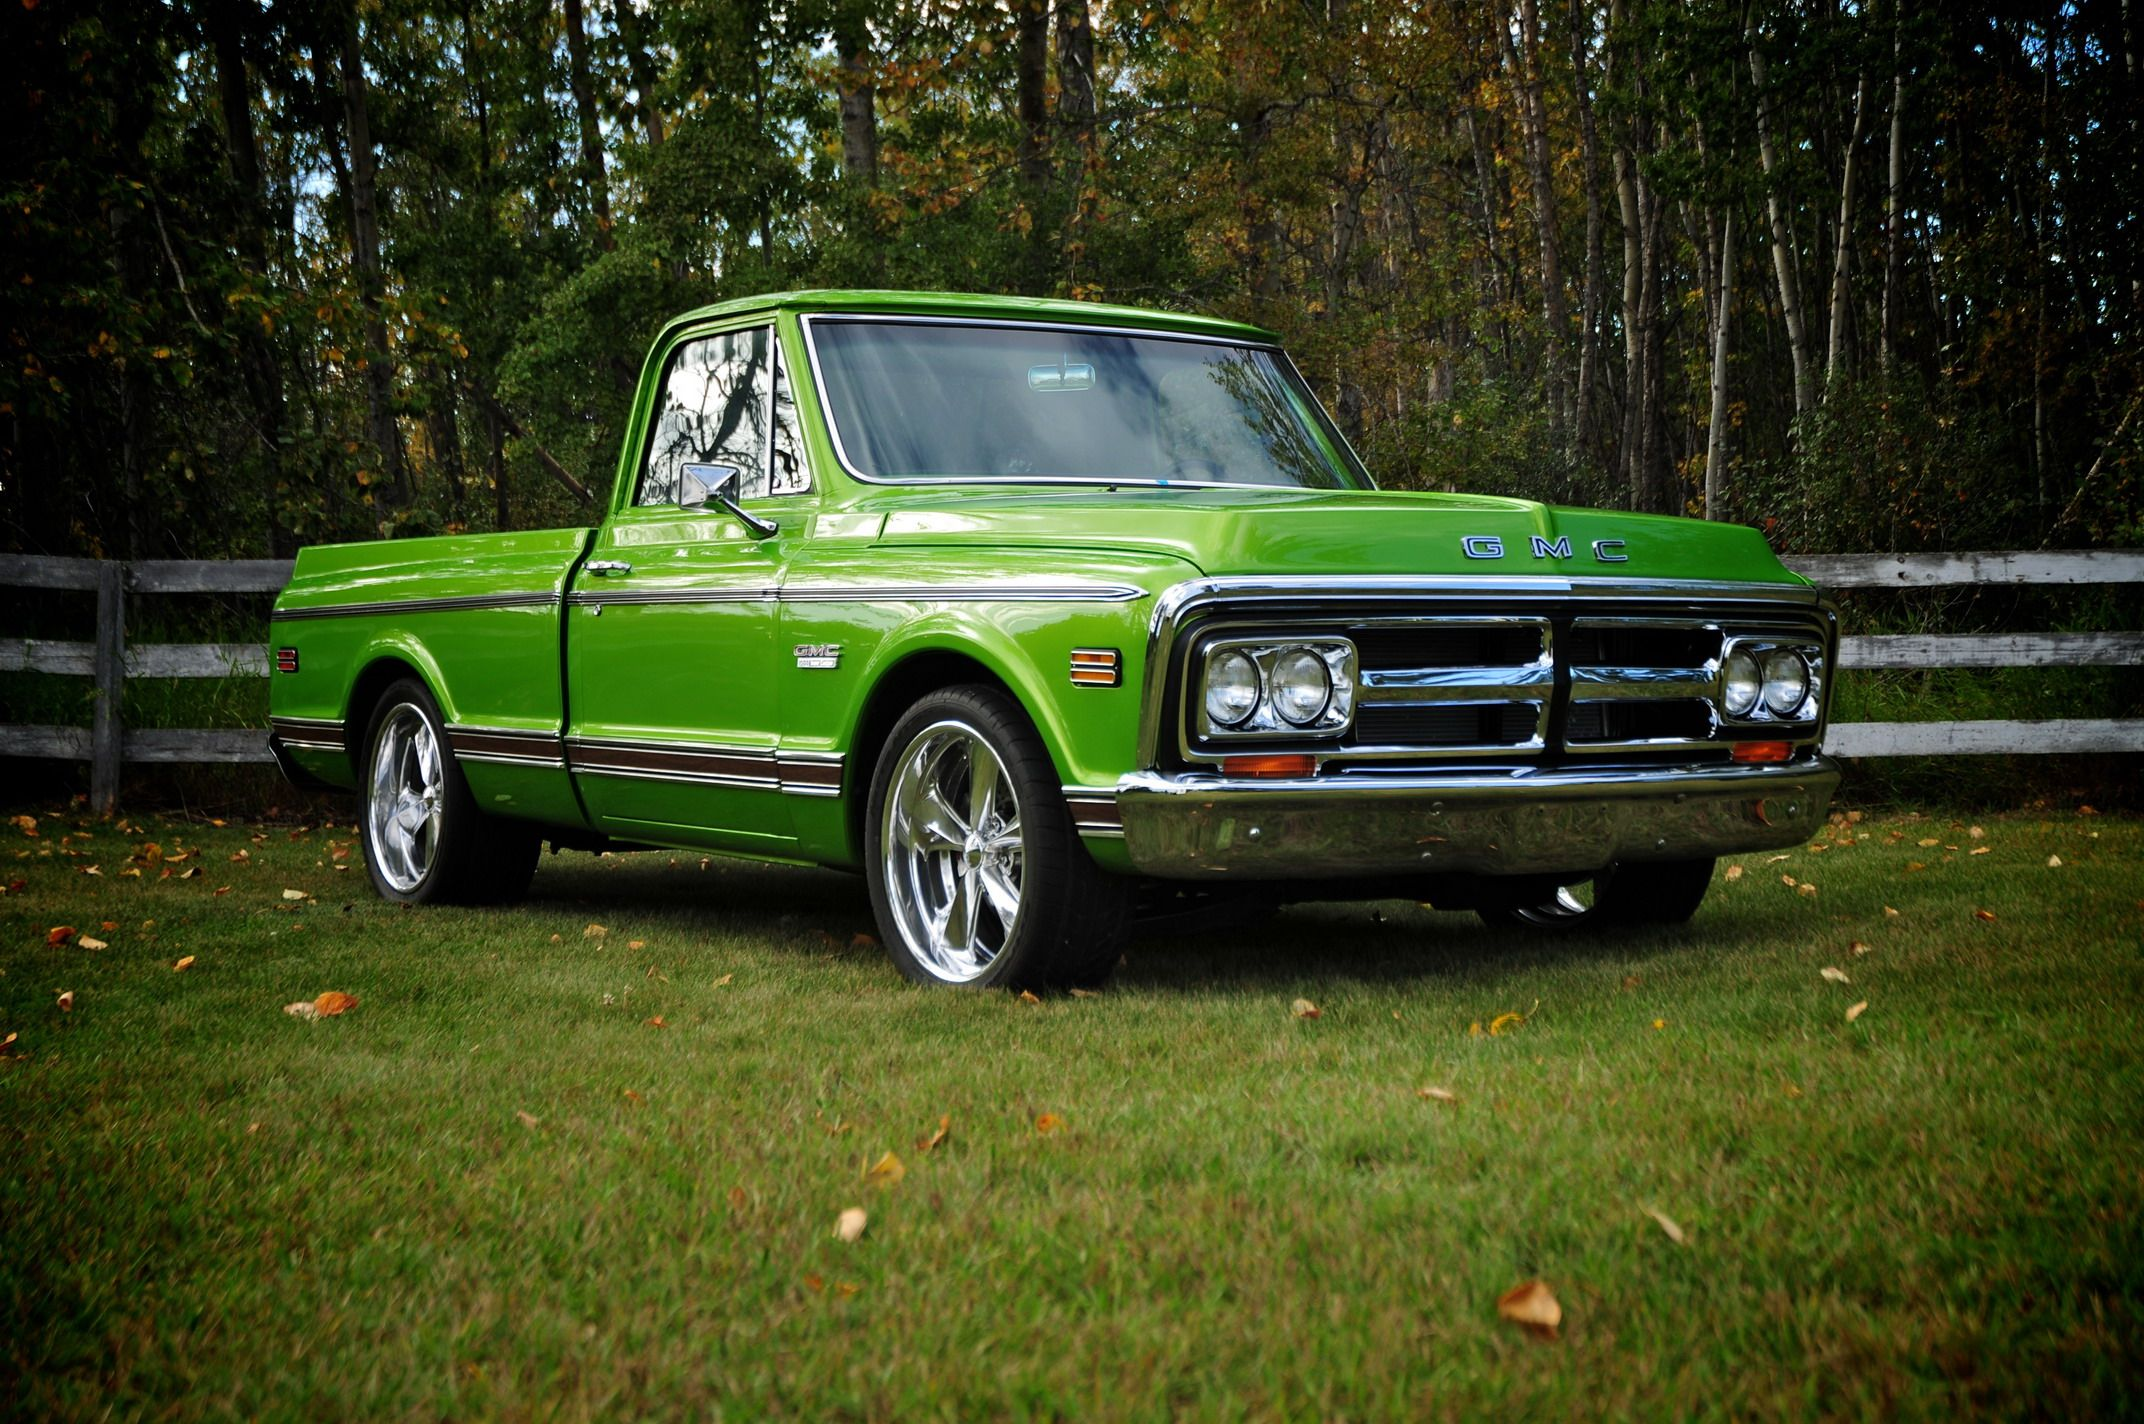 1970 GMC truck that I like. (With images) Gmc vehicles